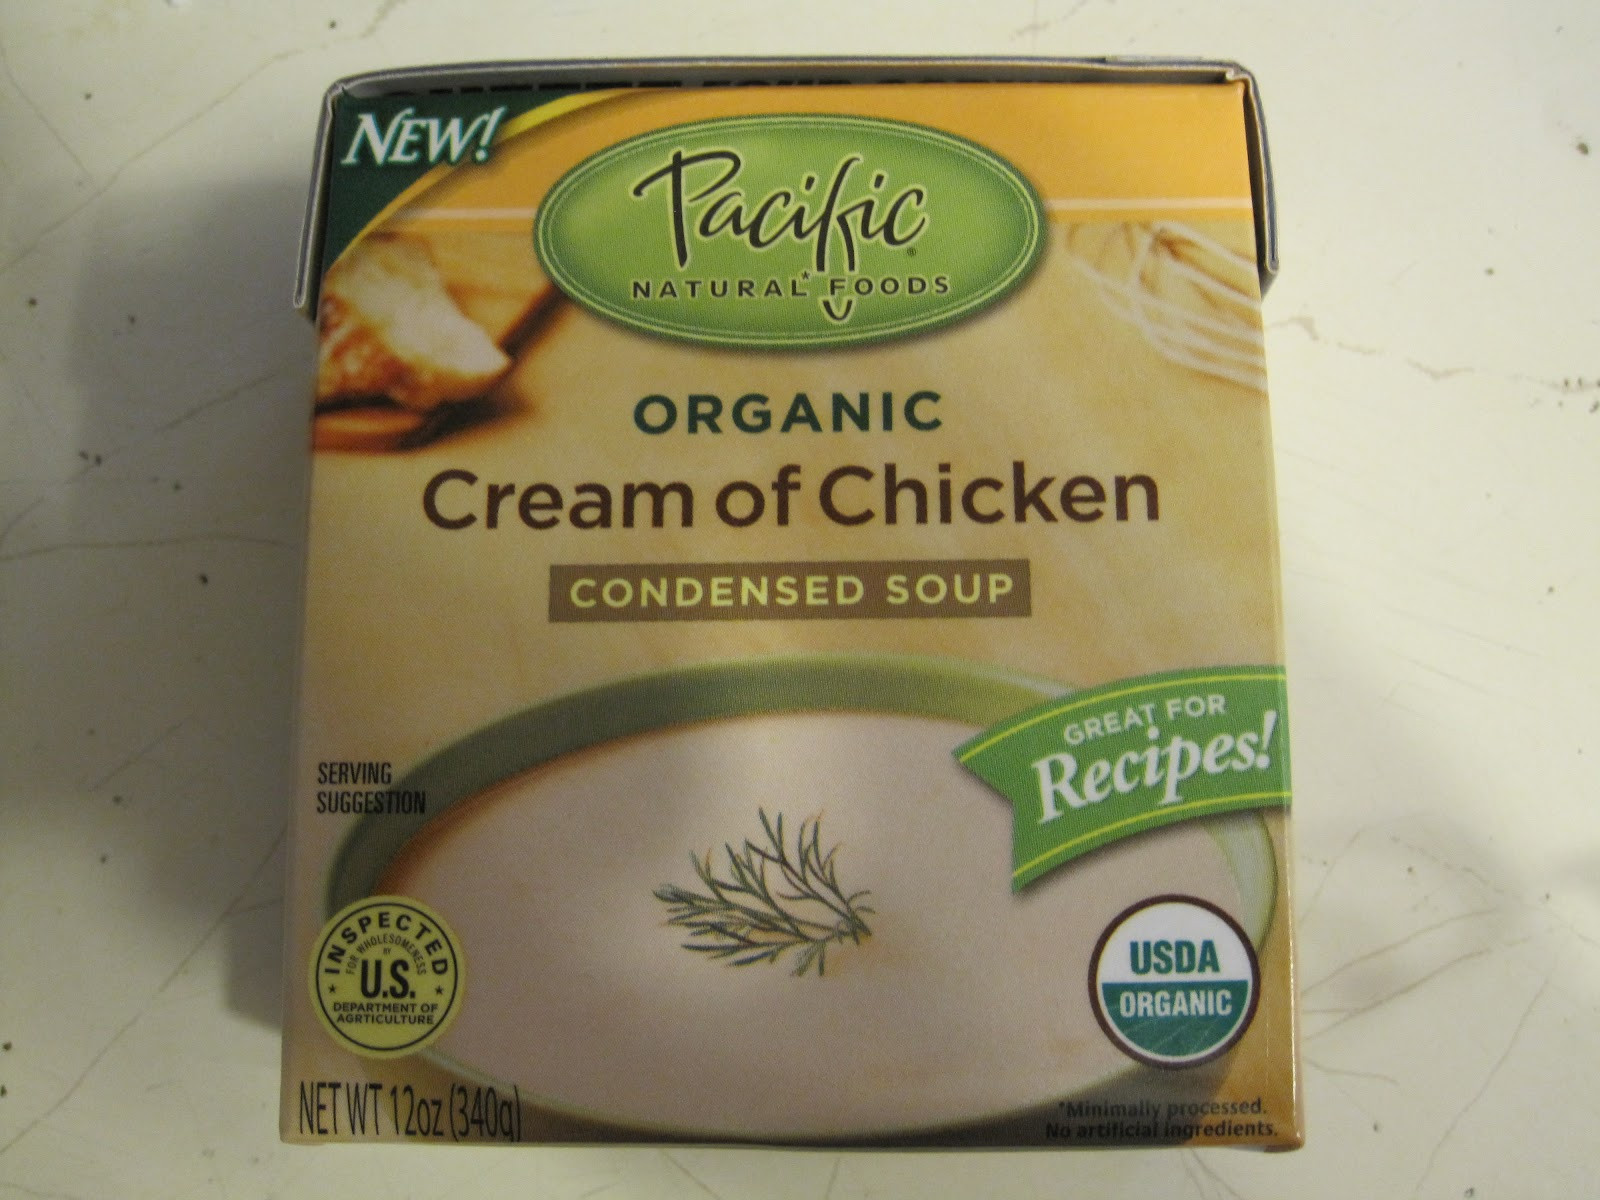 Gluten Free Cream Of Chicken Soup Brands  Gluten Free the Tasty Way Cooking and Living Gluten Free